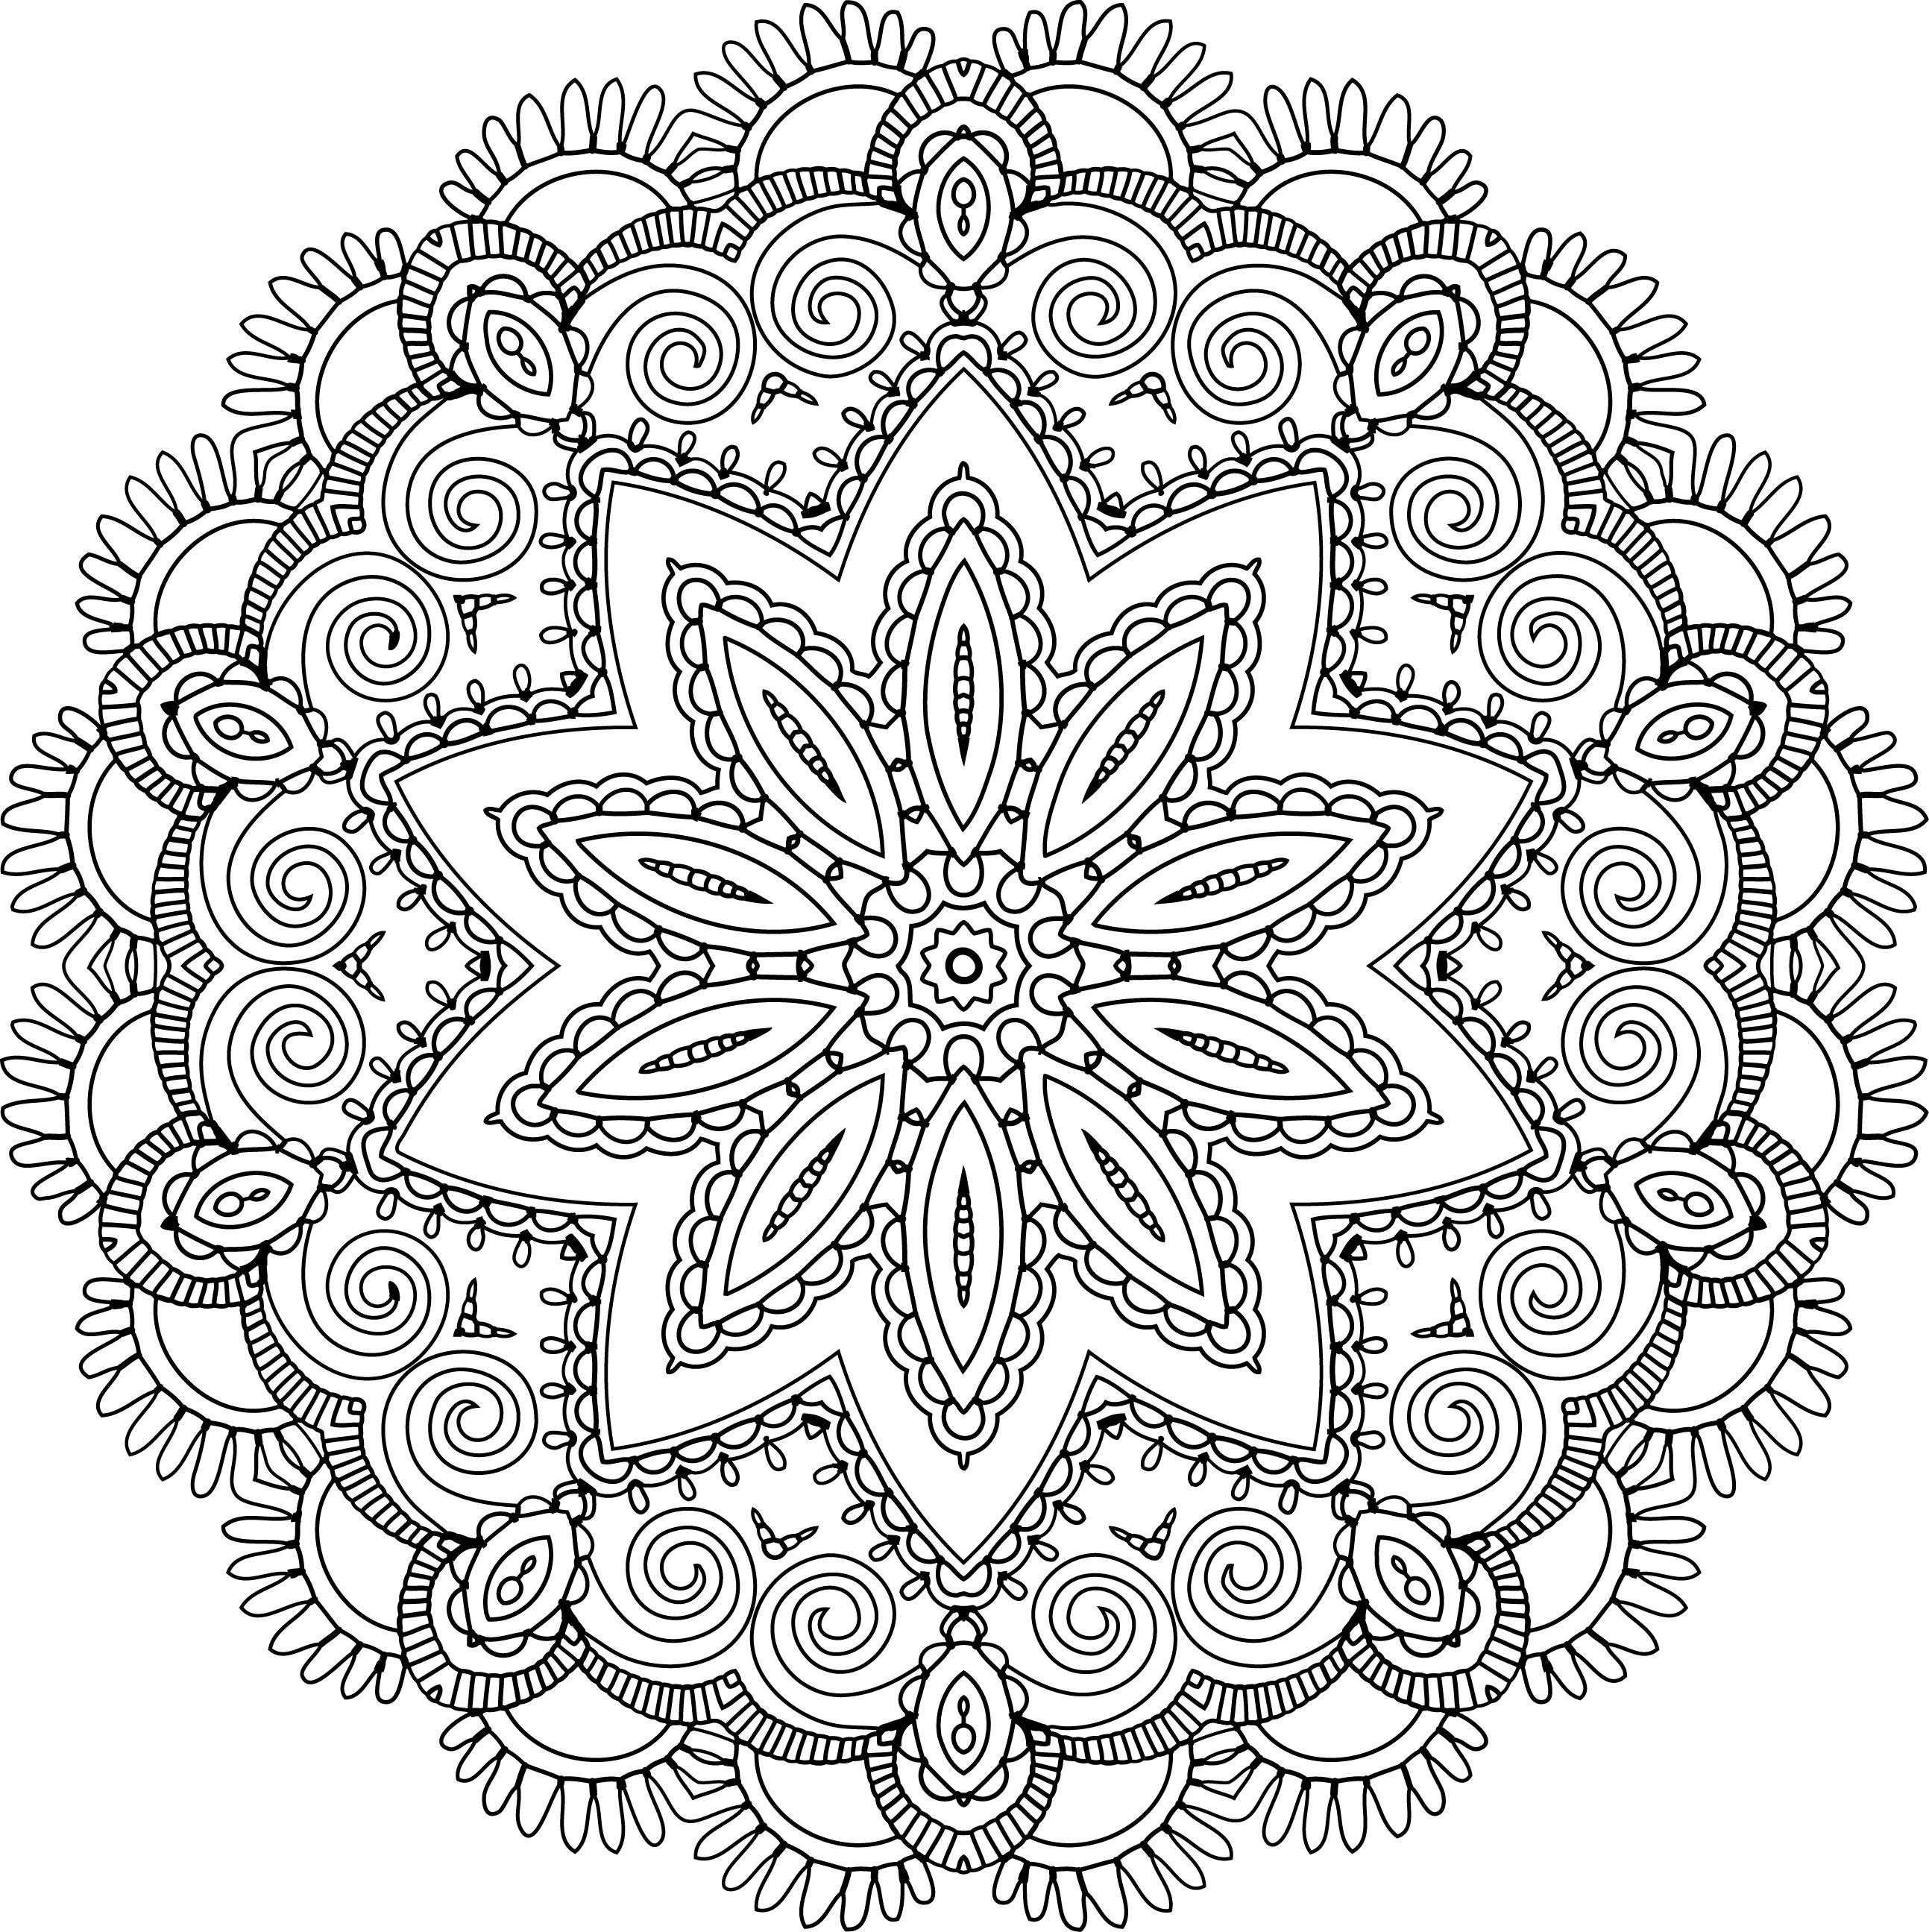 Paisley Flower Heart | Free Adult Coloring Pages | Free Printable ...